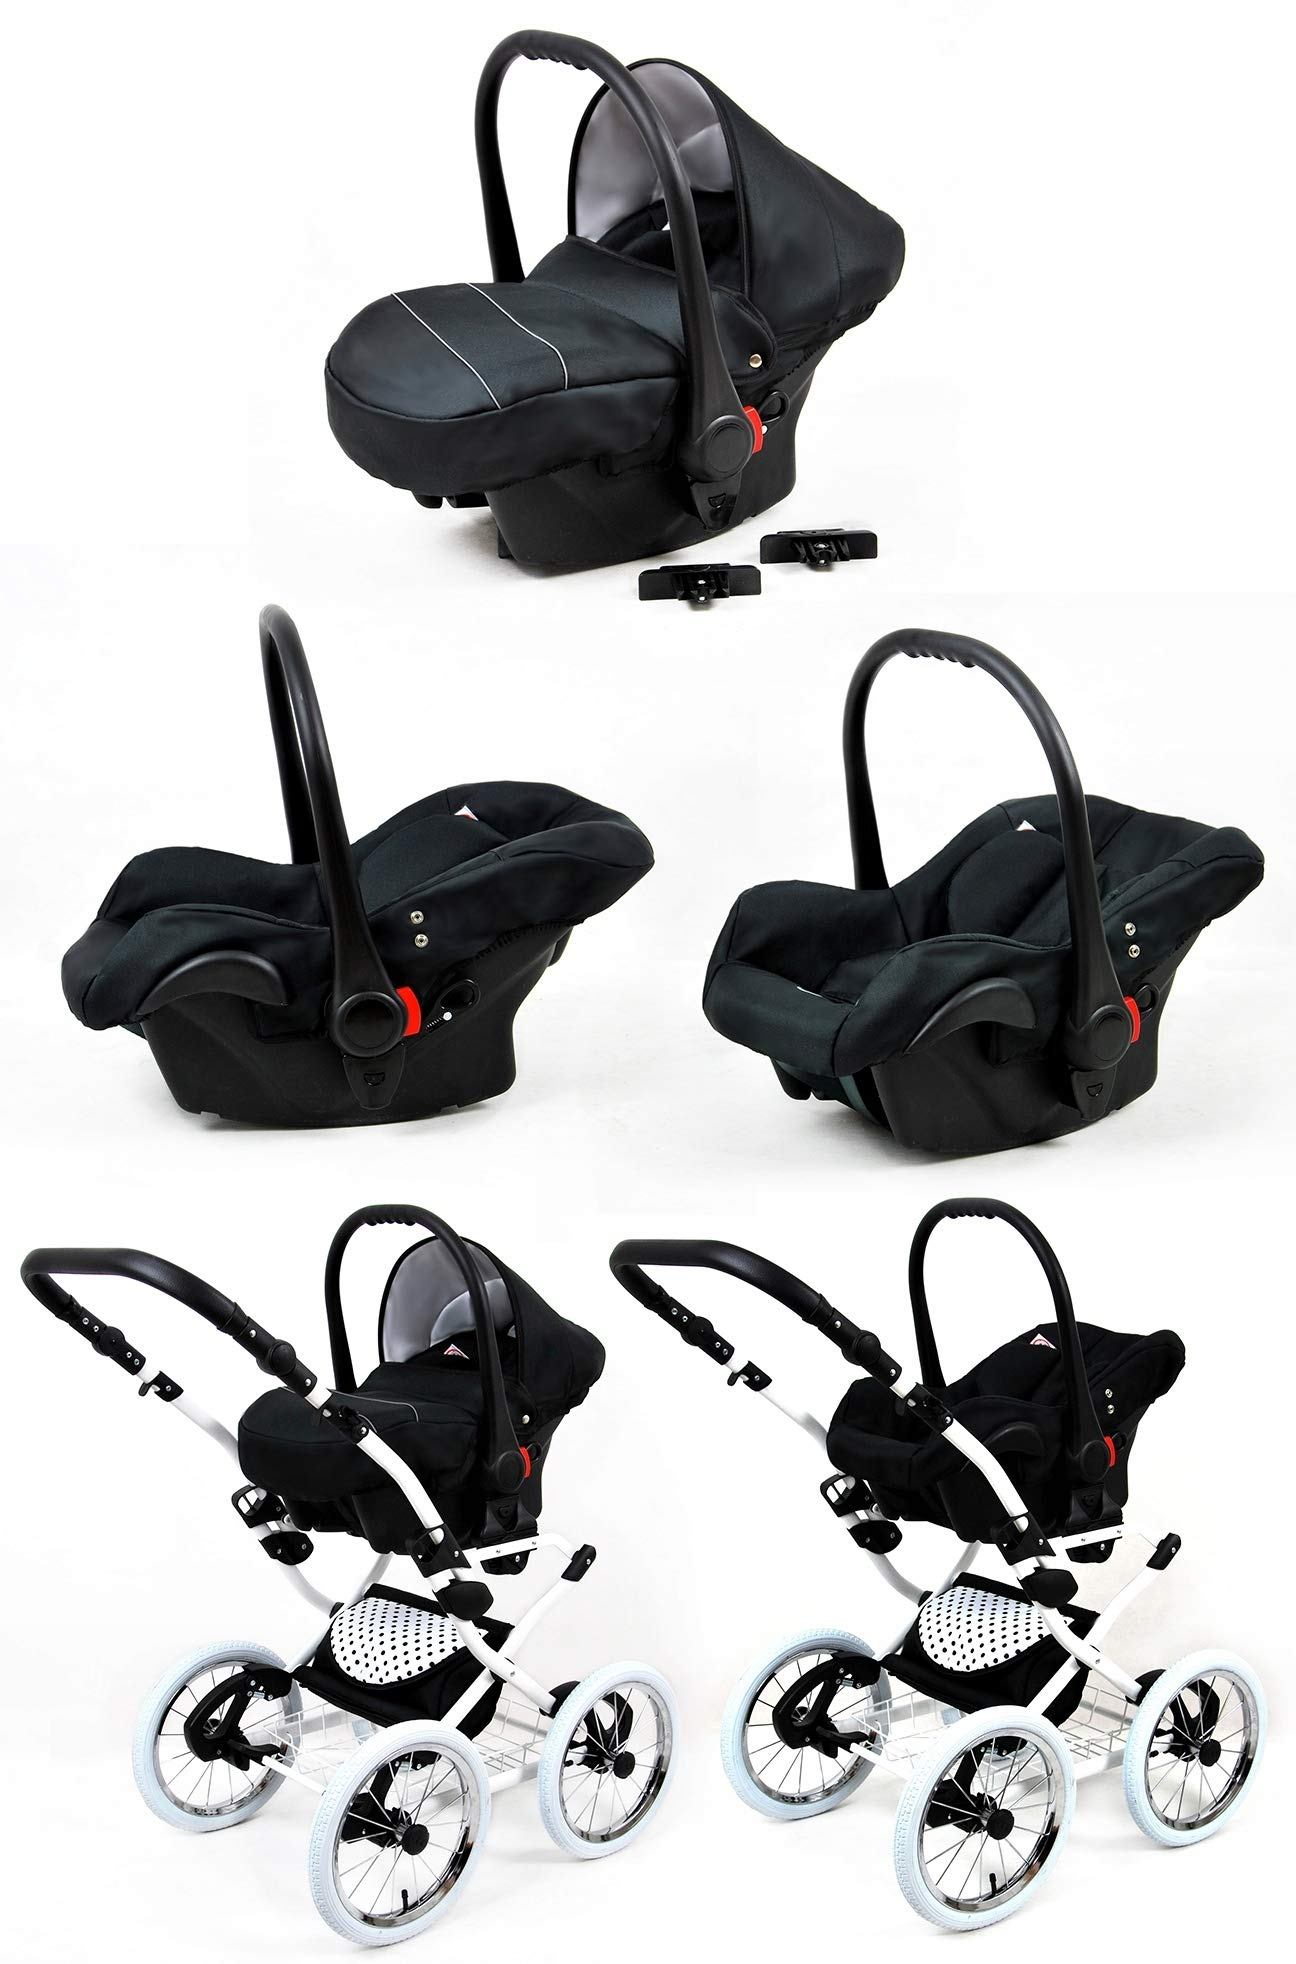 Travel System Retro Stroller Pram 2in1 3in1 Set Isofix Nostalgica by SaintBaby Navy Blue Star 2in1 Without Baby seat SaintBaby 3in1 or 2in1 Selectable. At 3in1 you will also receive the car seat (baby seat). Of course you get the baby tub (classic pram) as well as the buggy attachment (sports seat) no matter if 2in1 or 3in1. The car naturally complies with the EU safety standard EN1888. During production and before shipment, each wagon is carefully inspected so that you can be sure you have one of the best wagons. Saintbaby stands for all-in-one carefree packages, so you will also receive a diaper bag in the same colour as the car as well as rain and insect protection free of charge. With all the colours of this pram you will find the pram of your dreams. 4